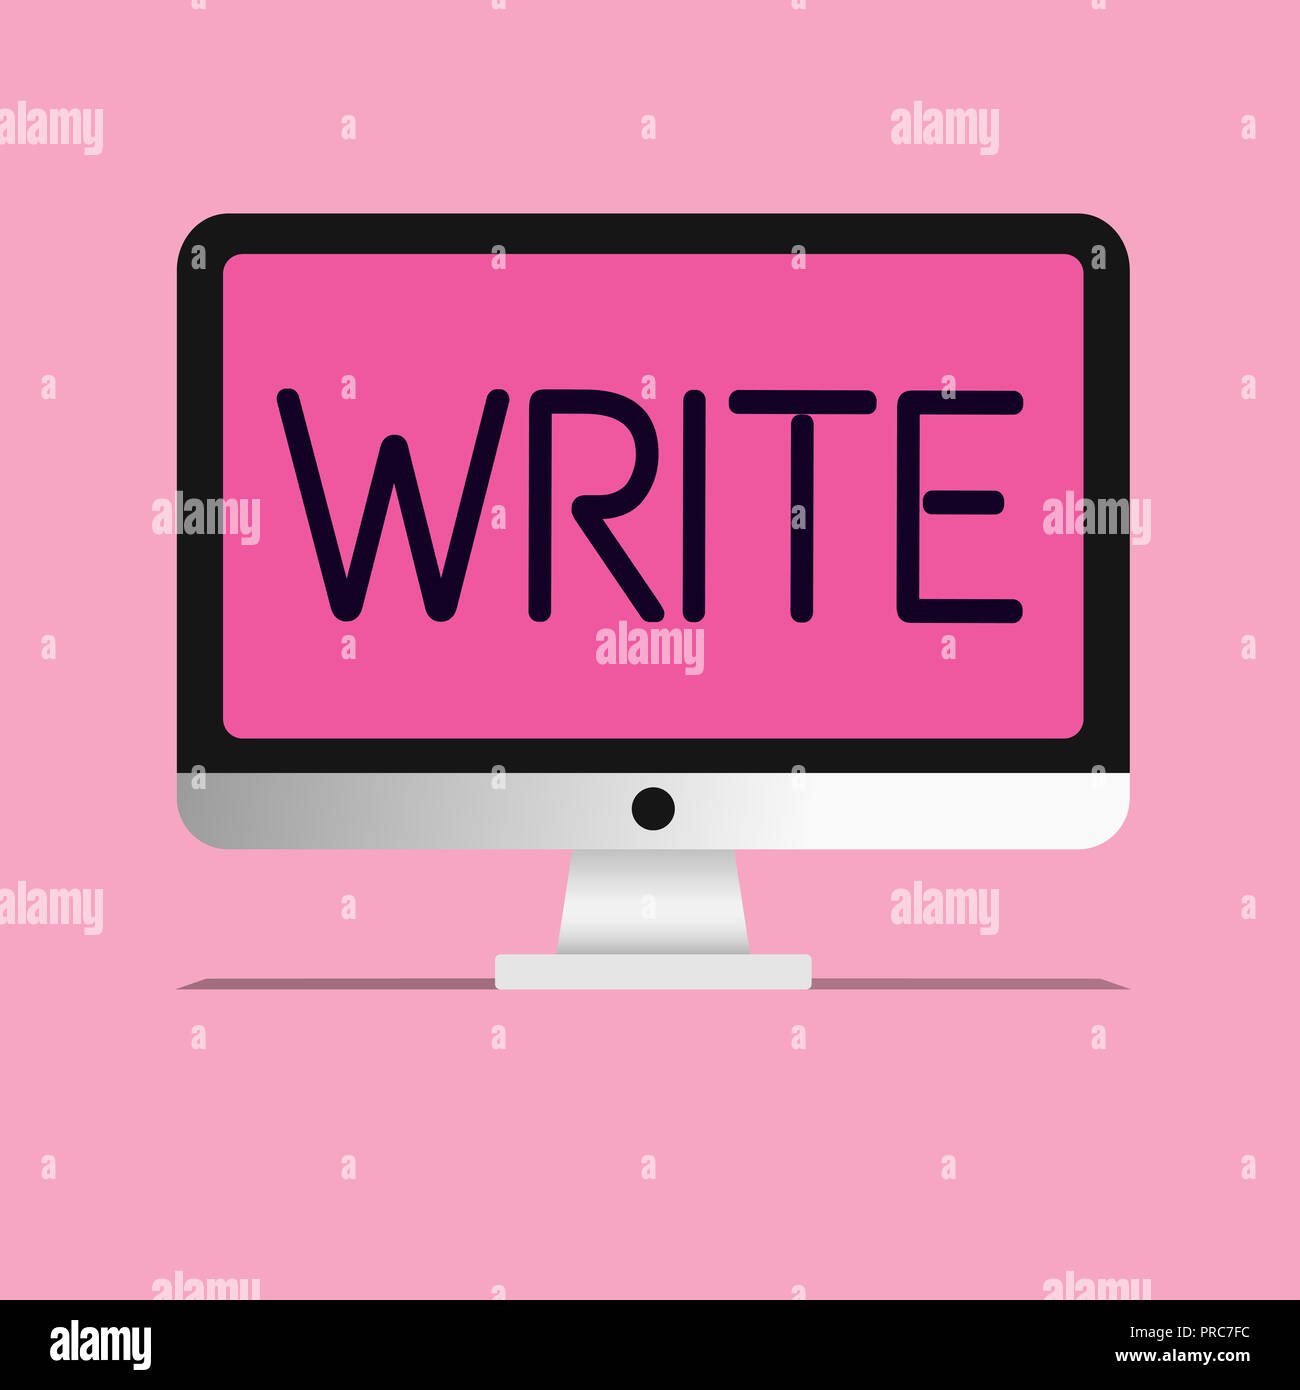 Handwriting Text Write Concept Meaning Mark Letters Words Or